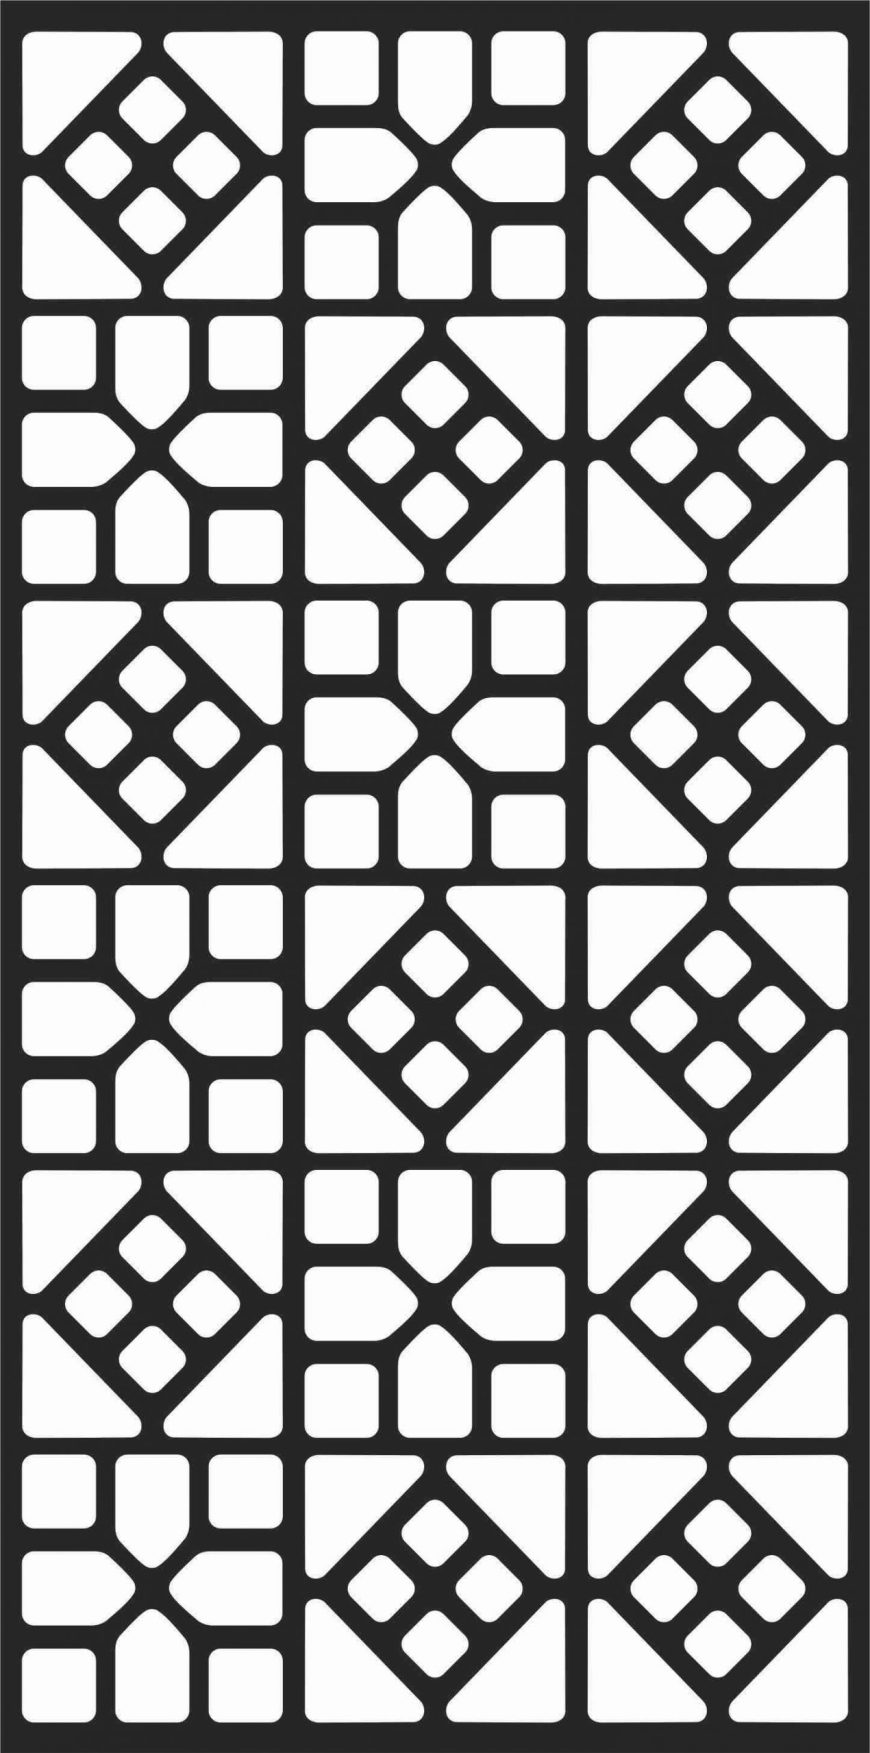 Floral Screen Patterns Design 4 Free DXF File